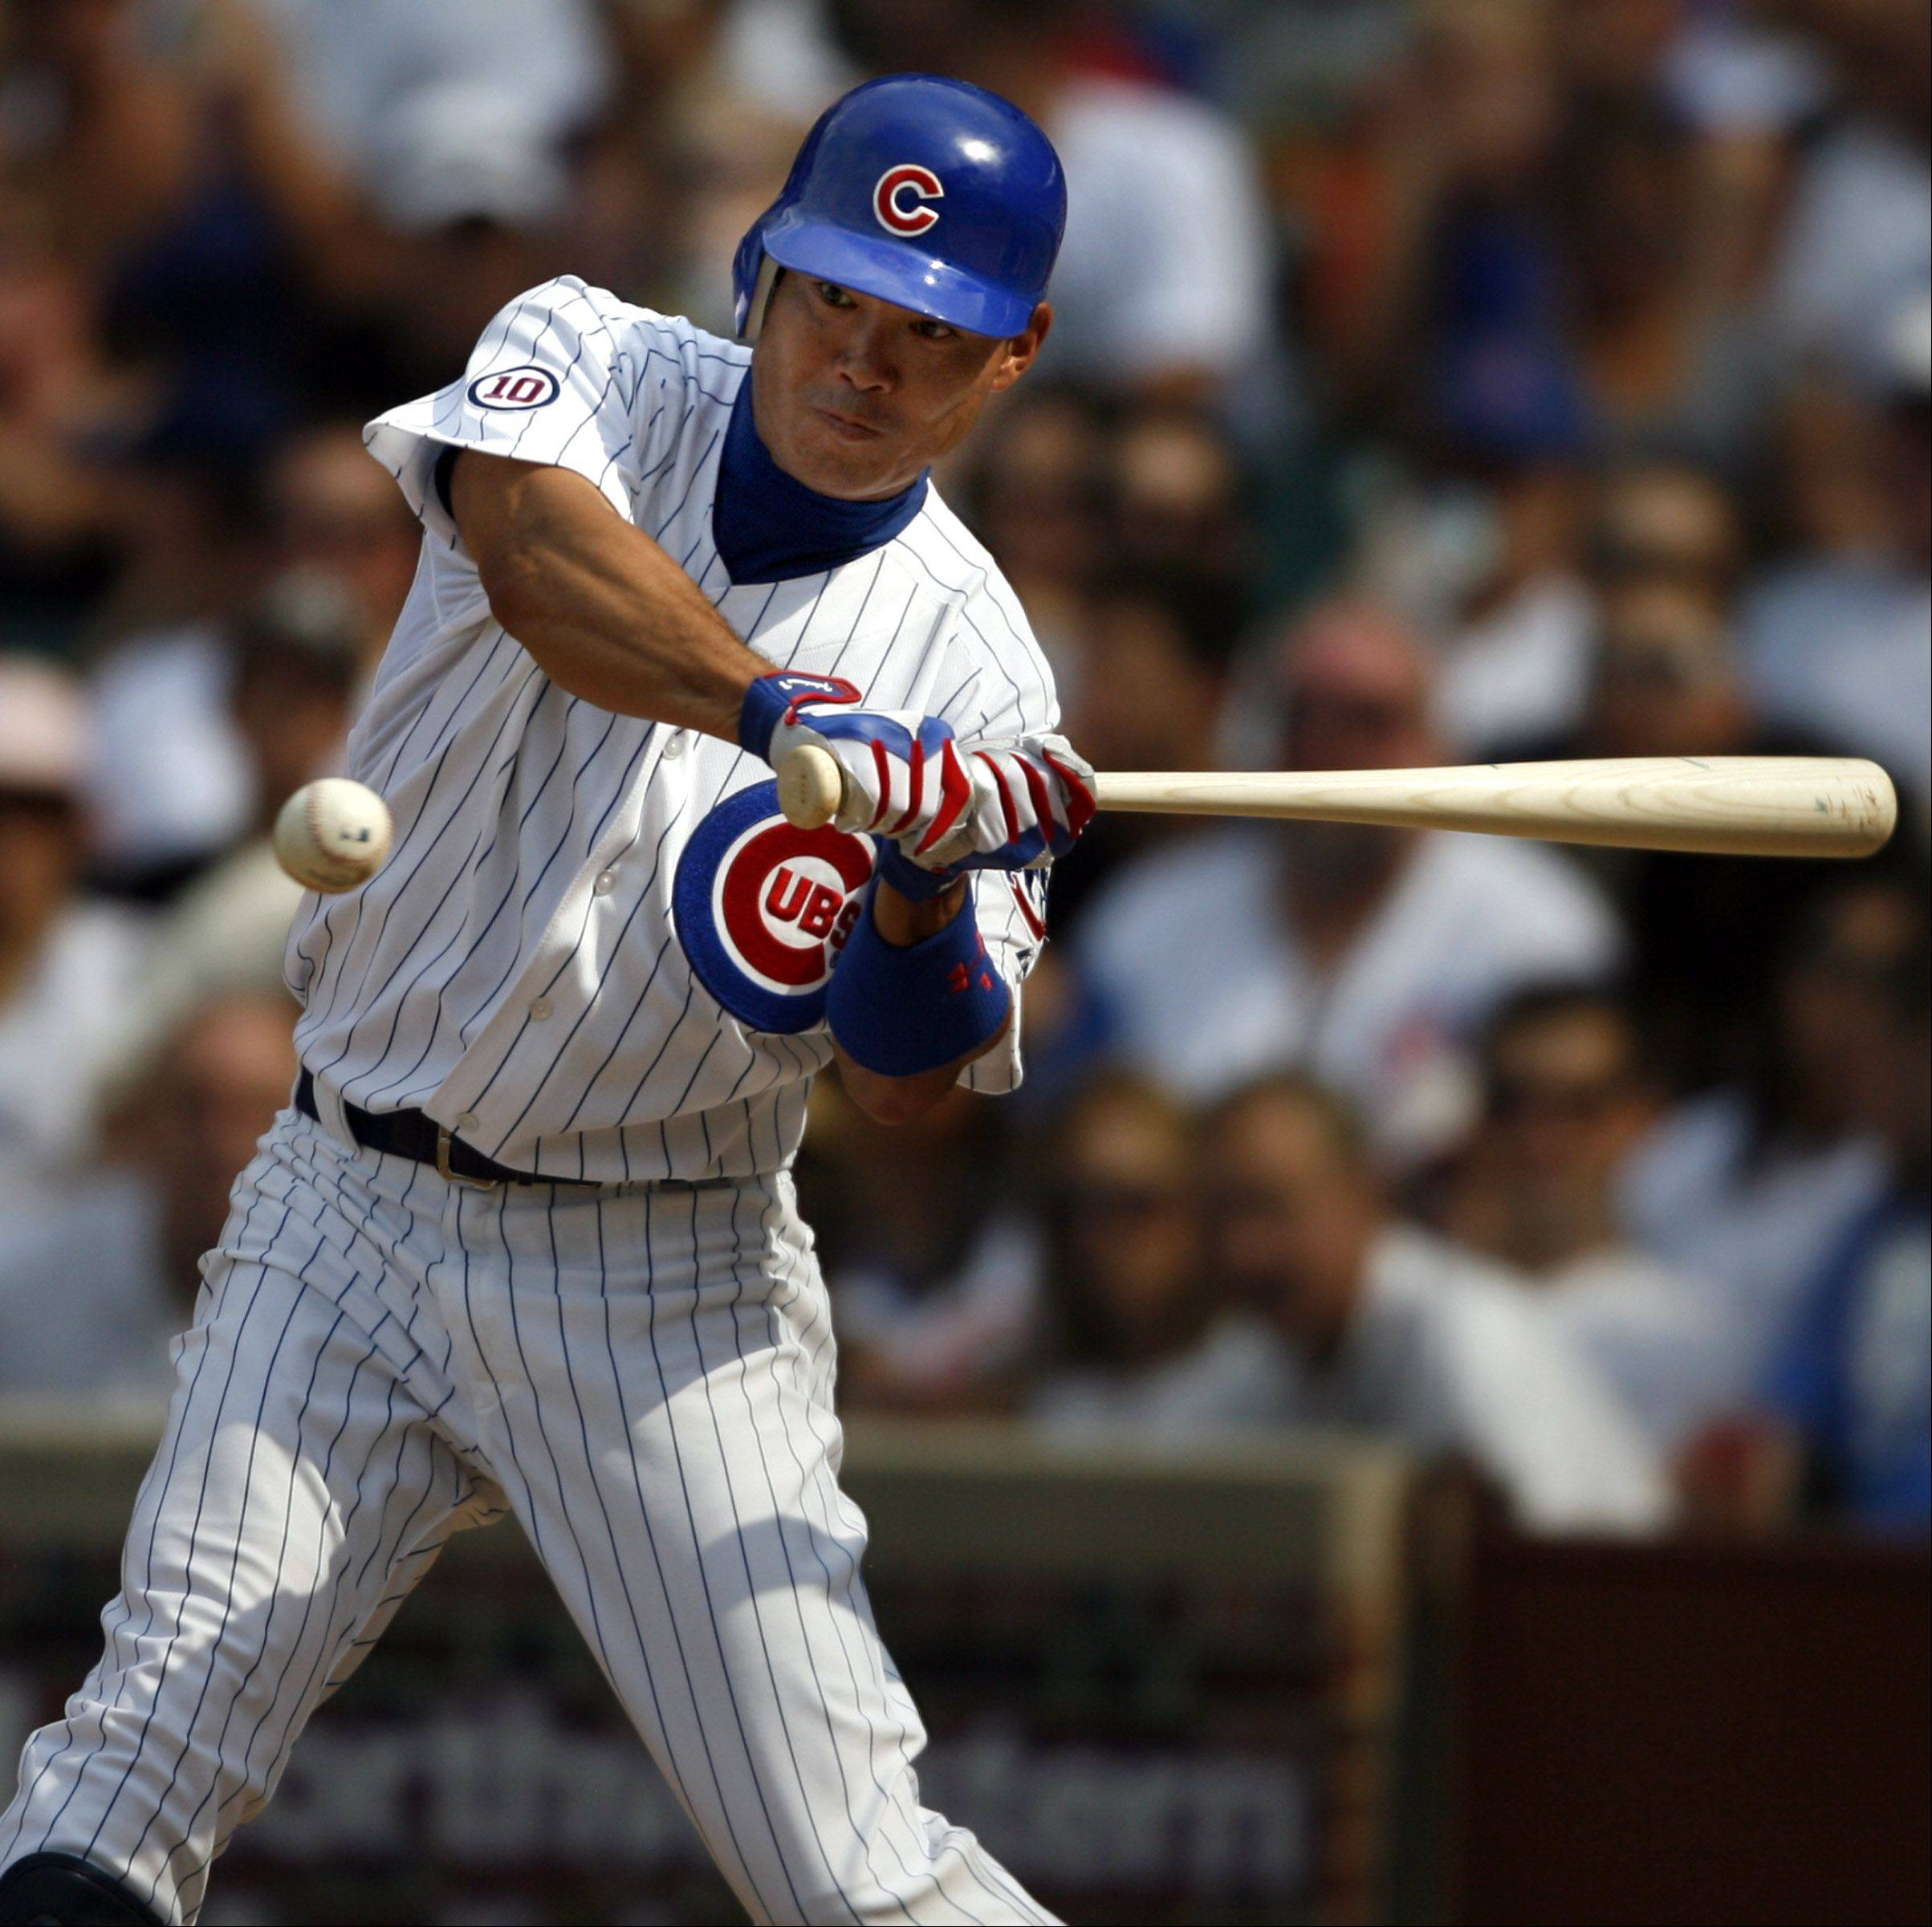 Cubs Kosuke Fukudome can't get the bat on this pitch from White Sox Philip Humber at Wrigley Field on Saturday.